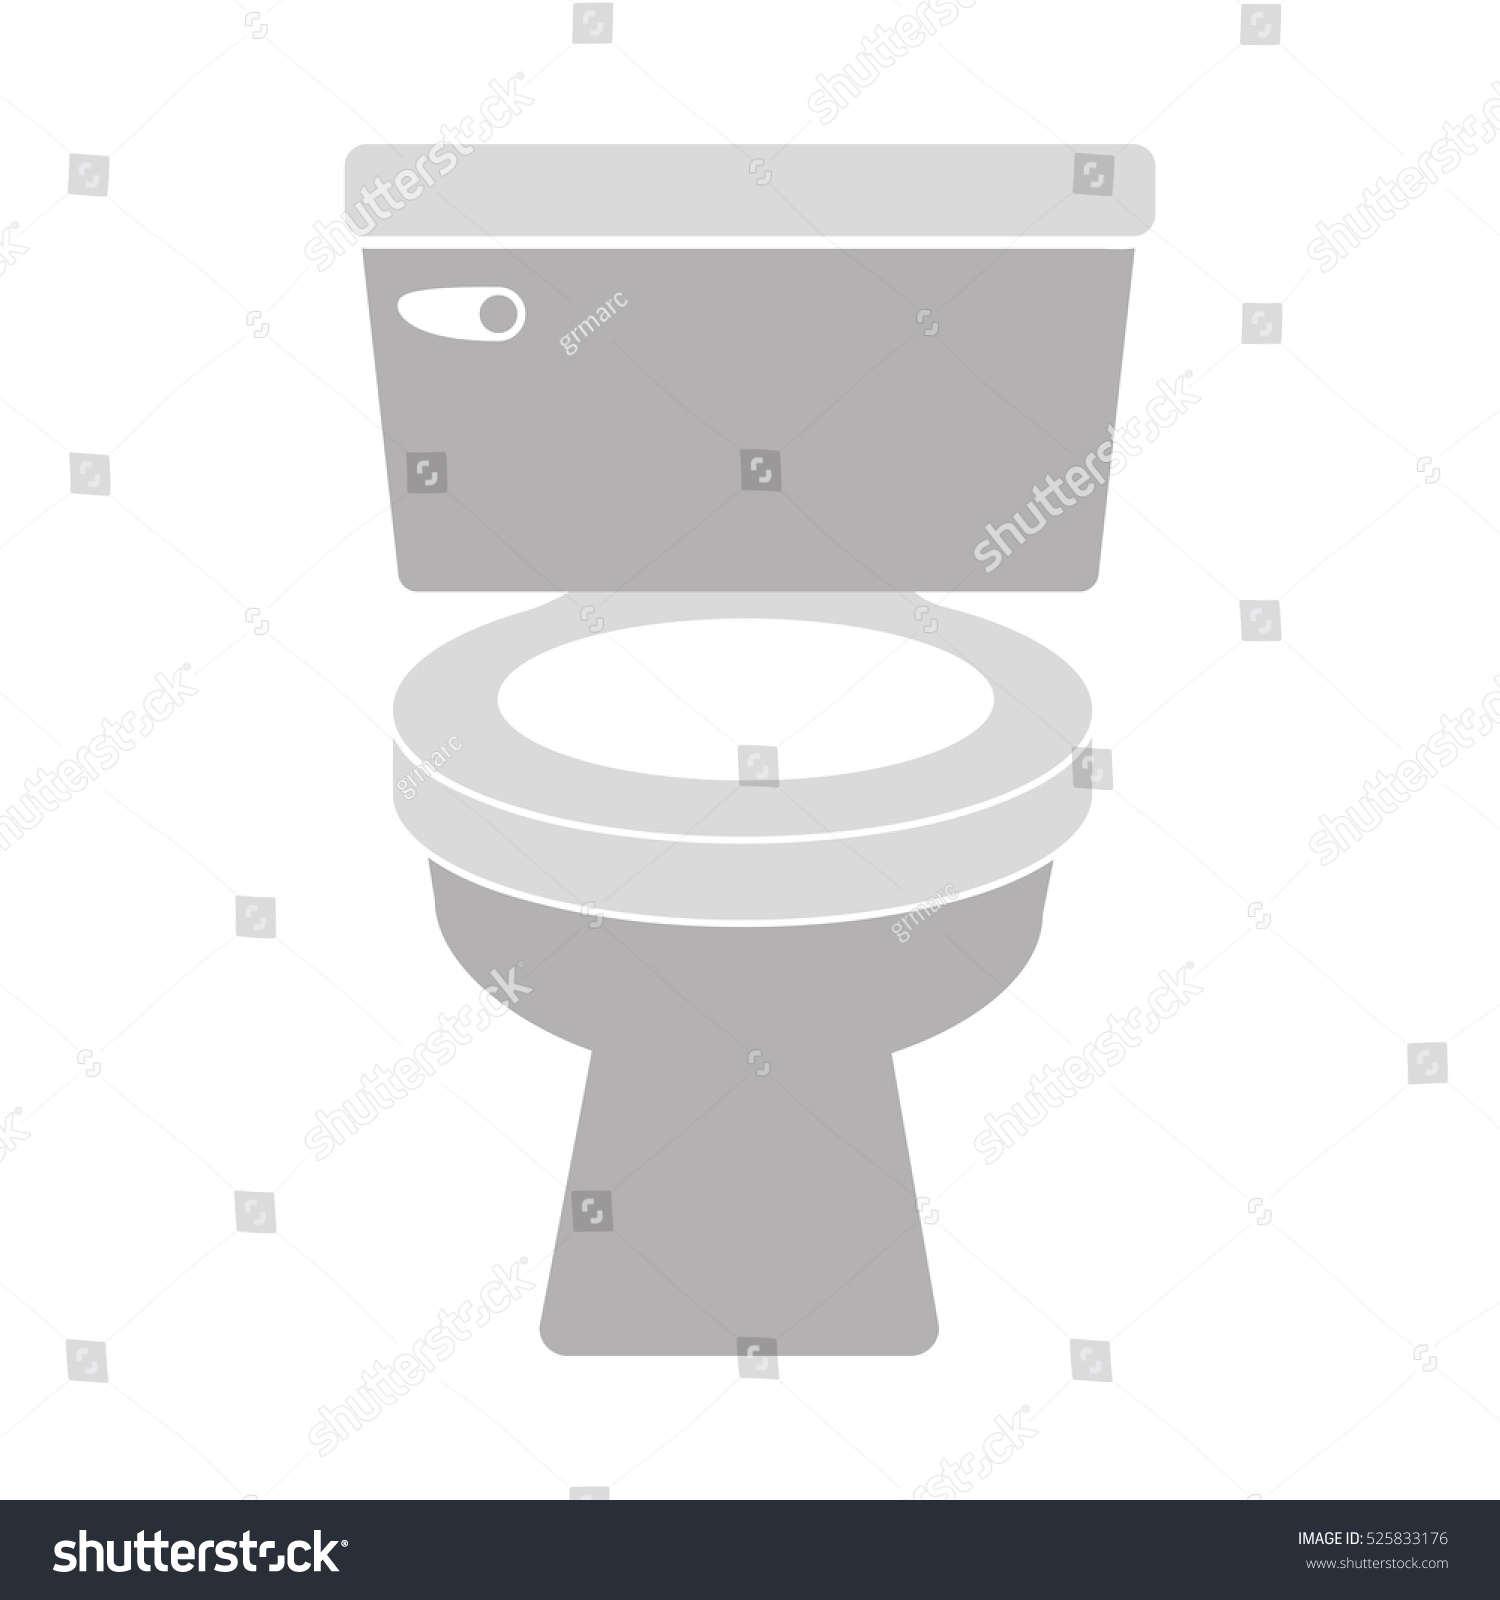 How To Create A Greyscale Bathroom: Gray Scale Silhouette Toilet Stock Vector 525833176